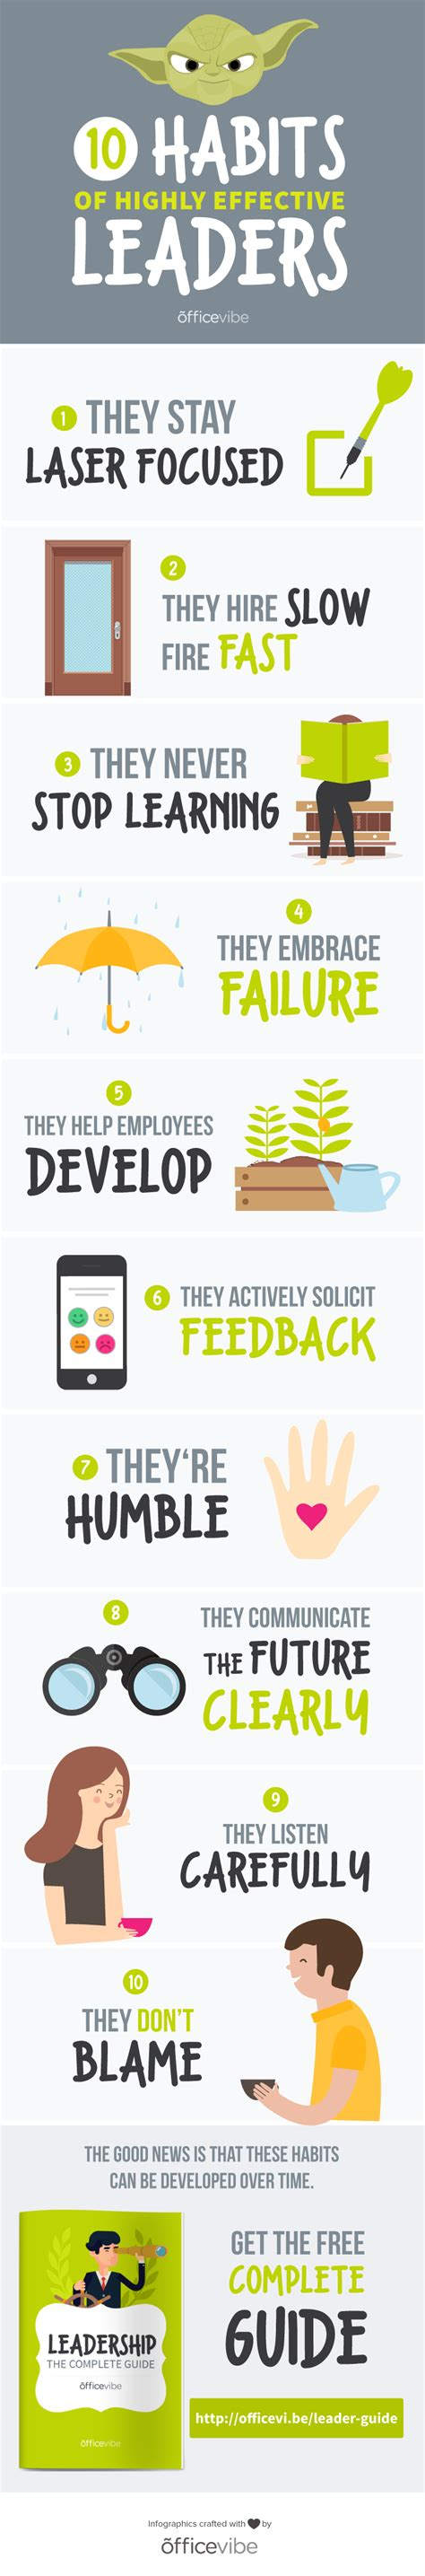 10 Habits Of Highly Effective Leaders [infographic]